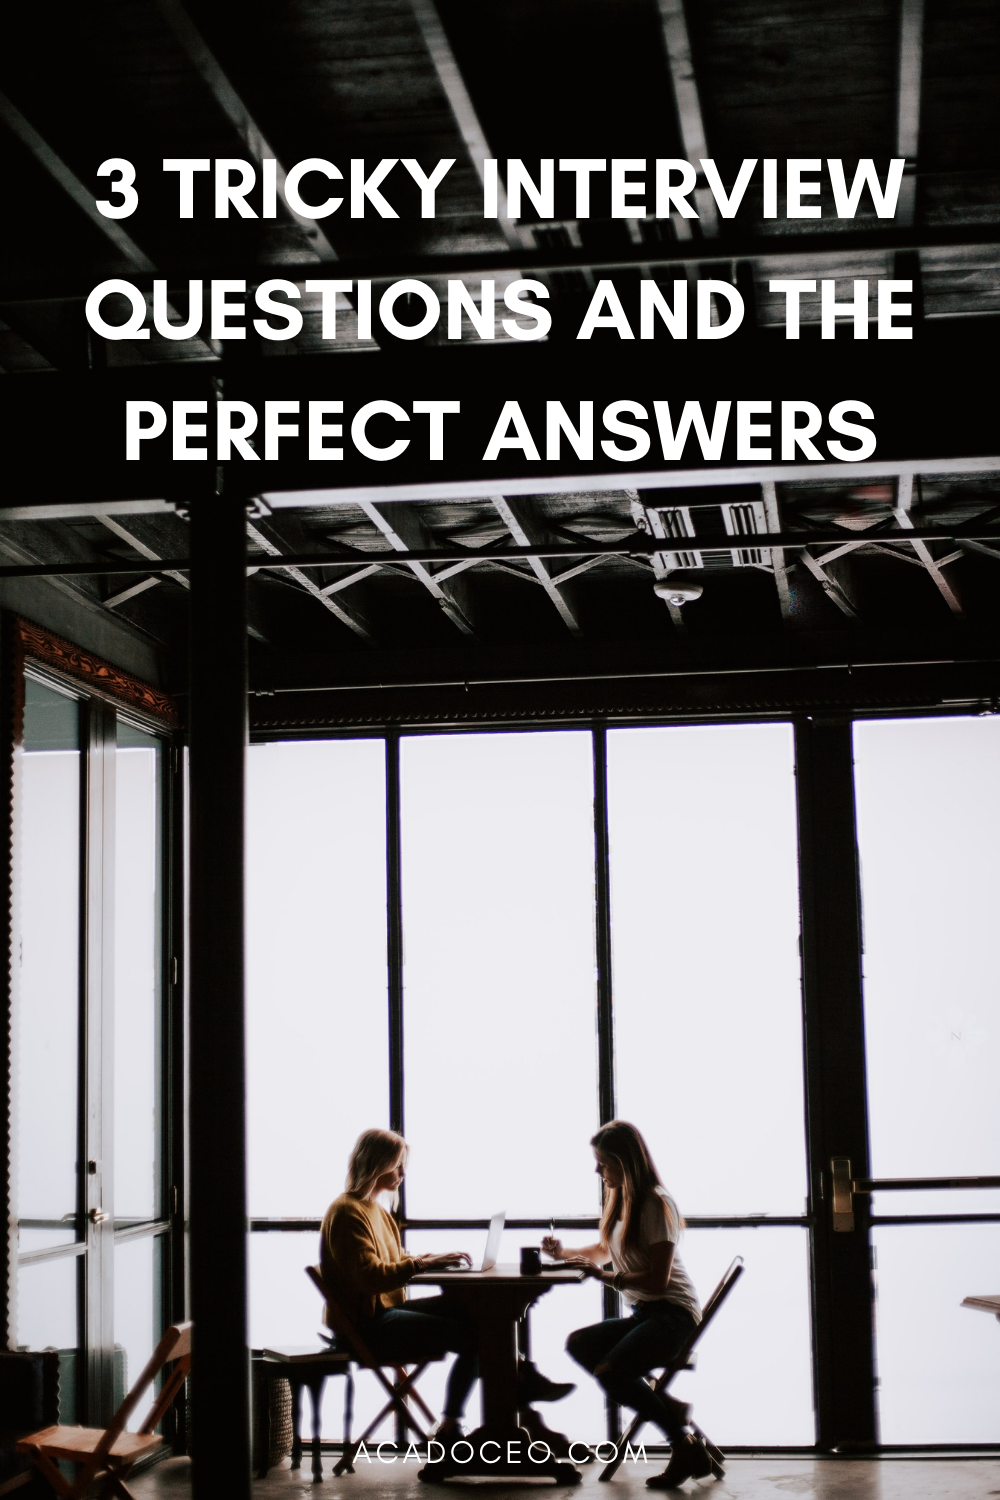 3 TRICKY INTERVIEW QUESTIONS AND THE PERFECT ANSWERS